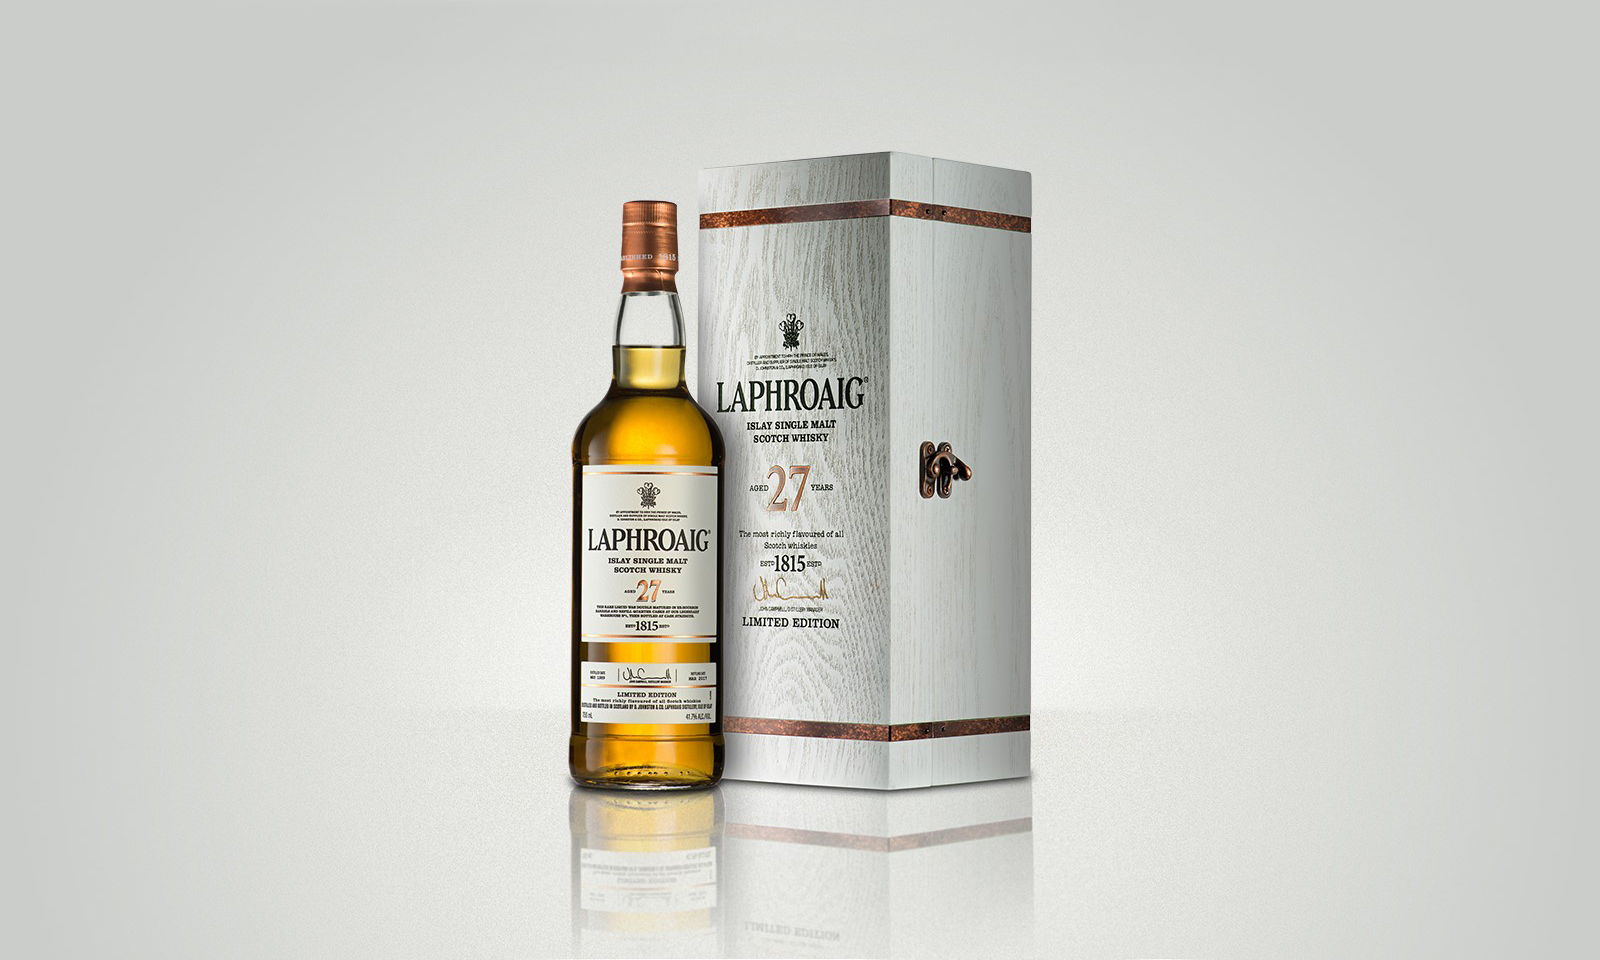 Aged to Perfection, Laphroaig 27 Year Old Scotch Whisky